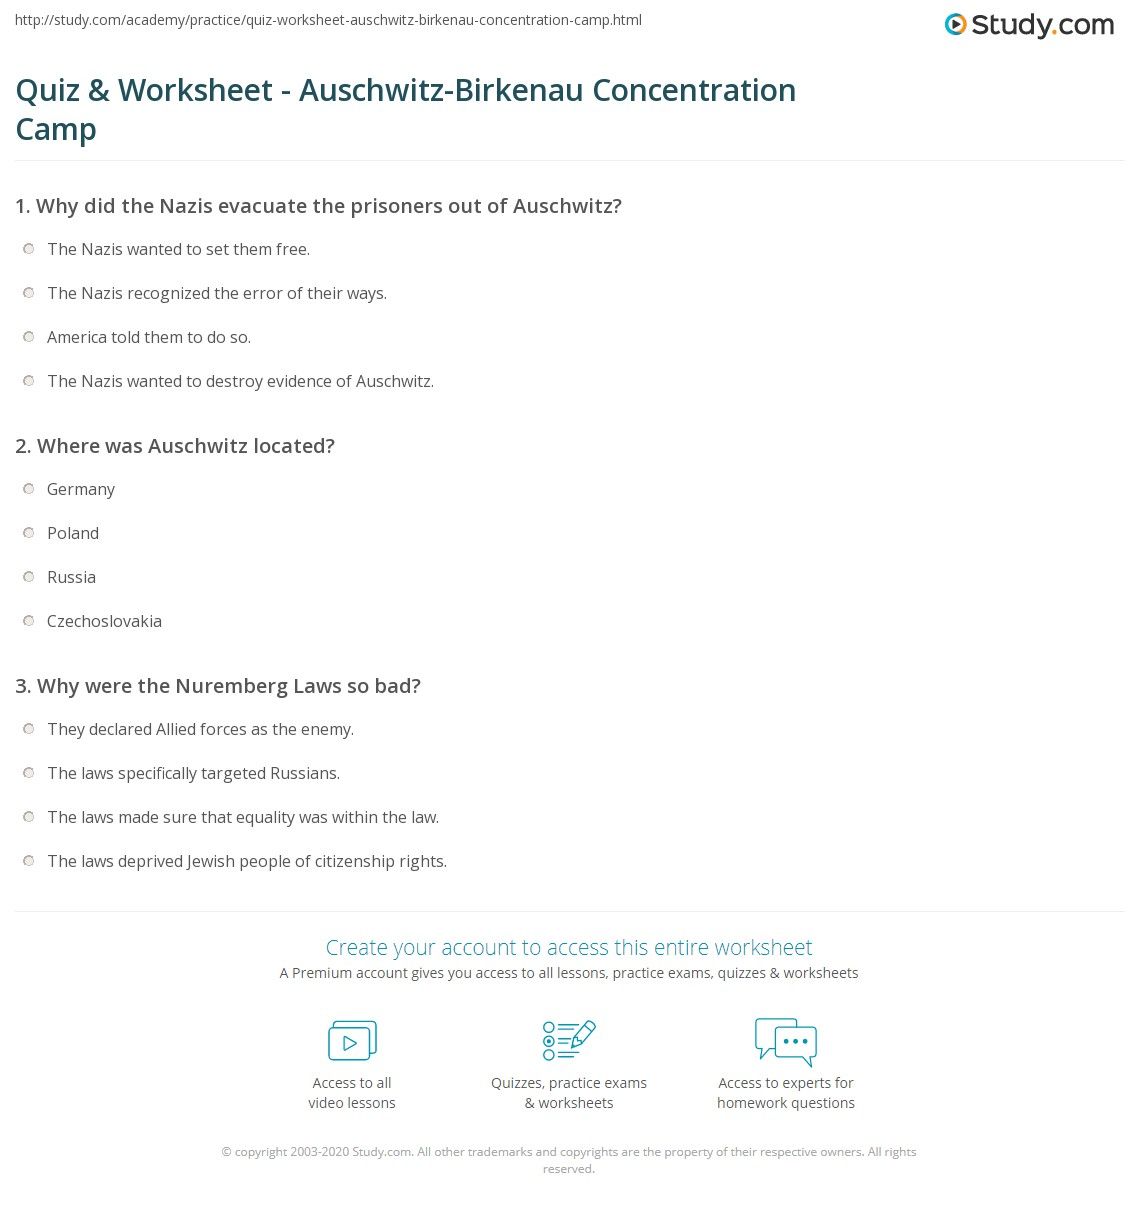 quiz worksheet auschwitz birkenau concentration camp. Black Bedroom Furniture Sets. Home Design Ideas